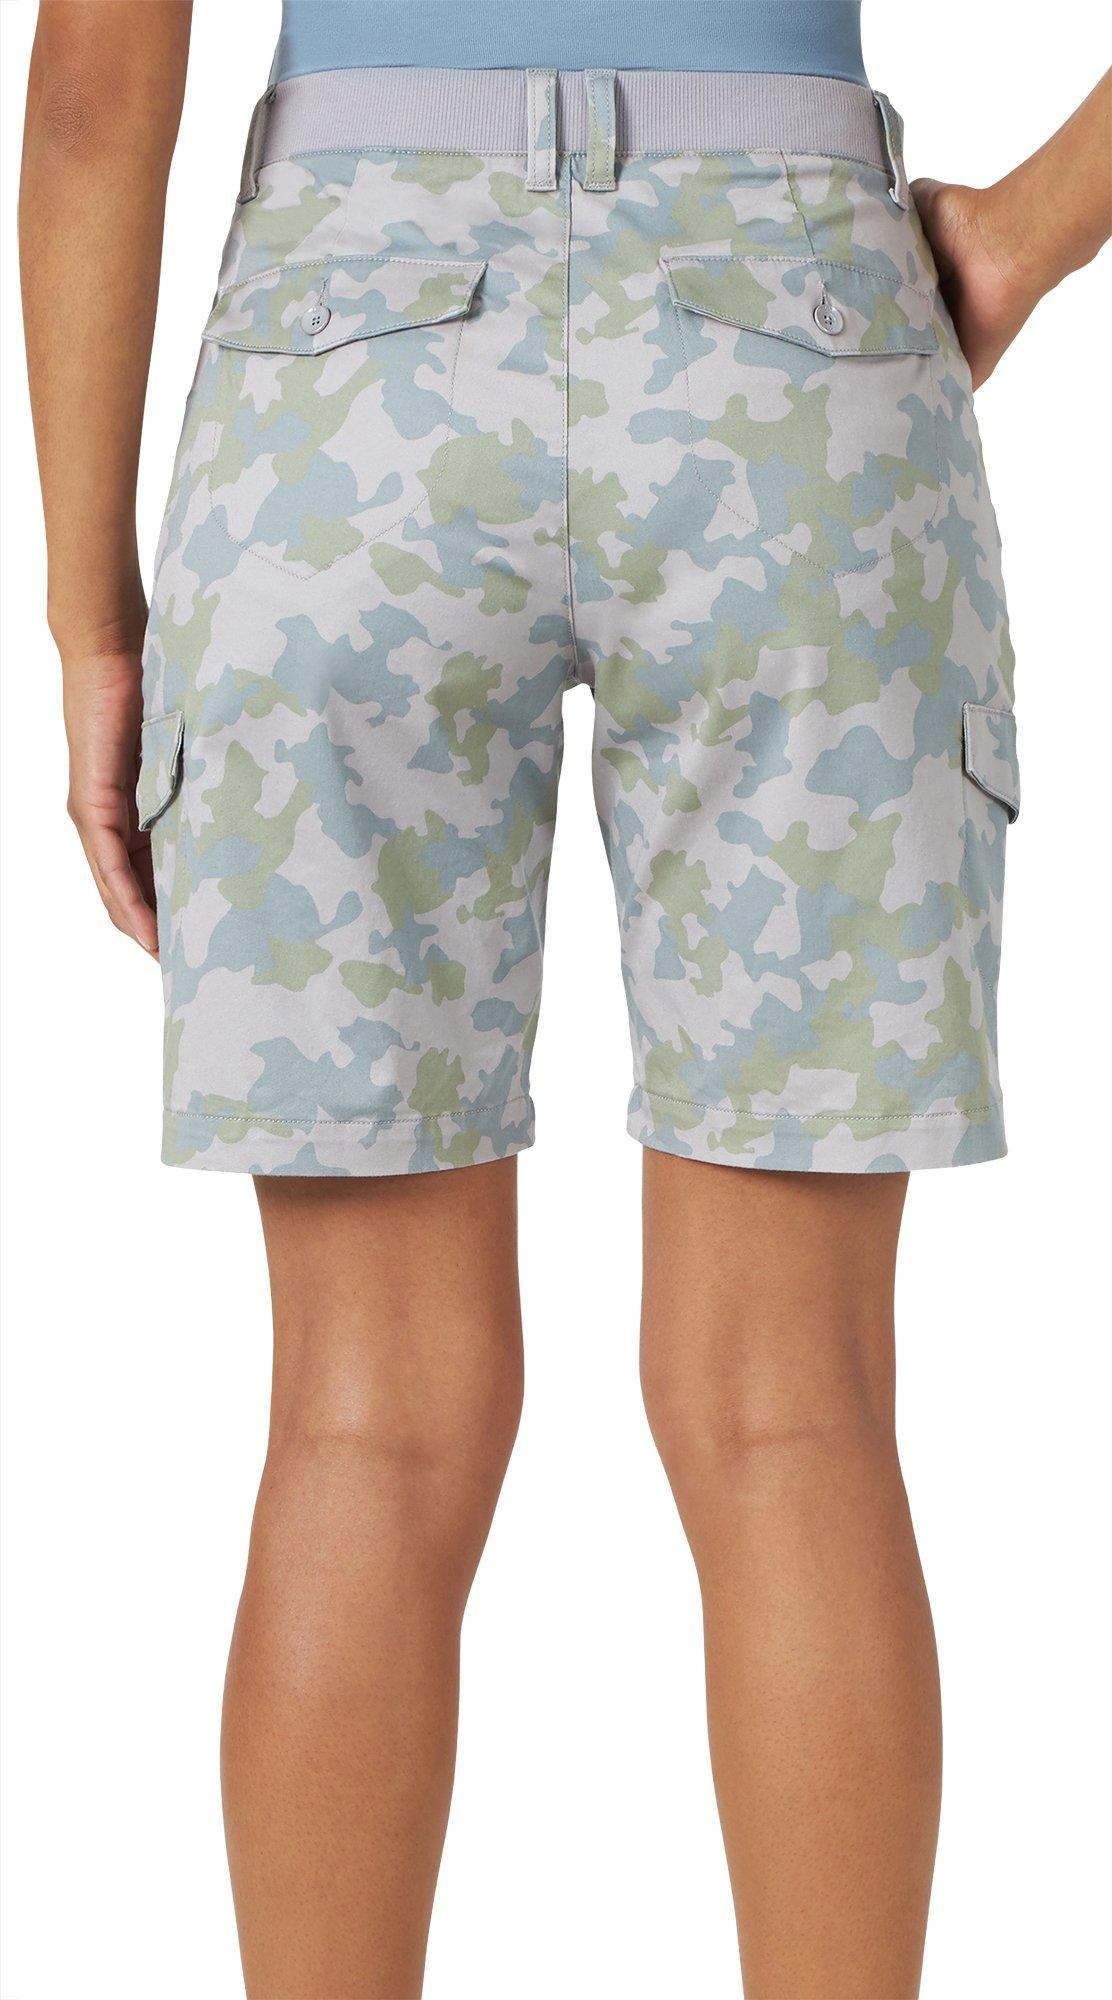 LEE Girls Little Fashion Bermuda Short